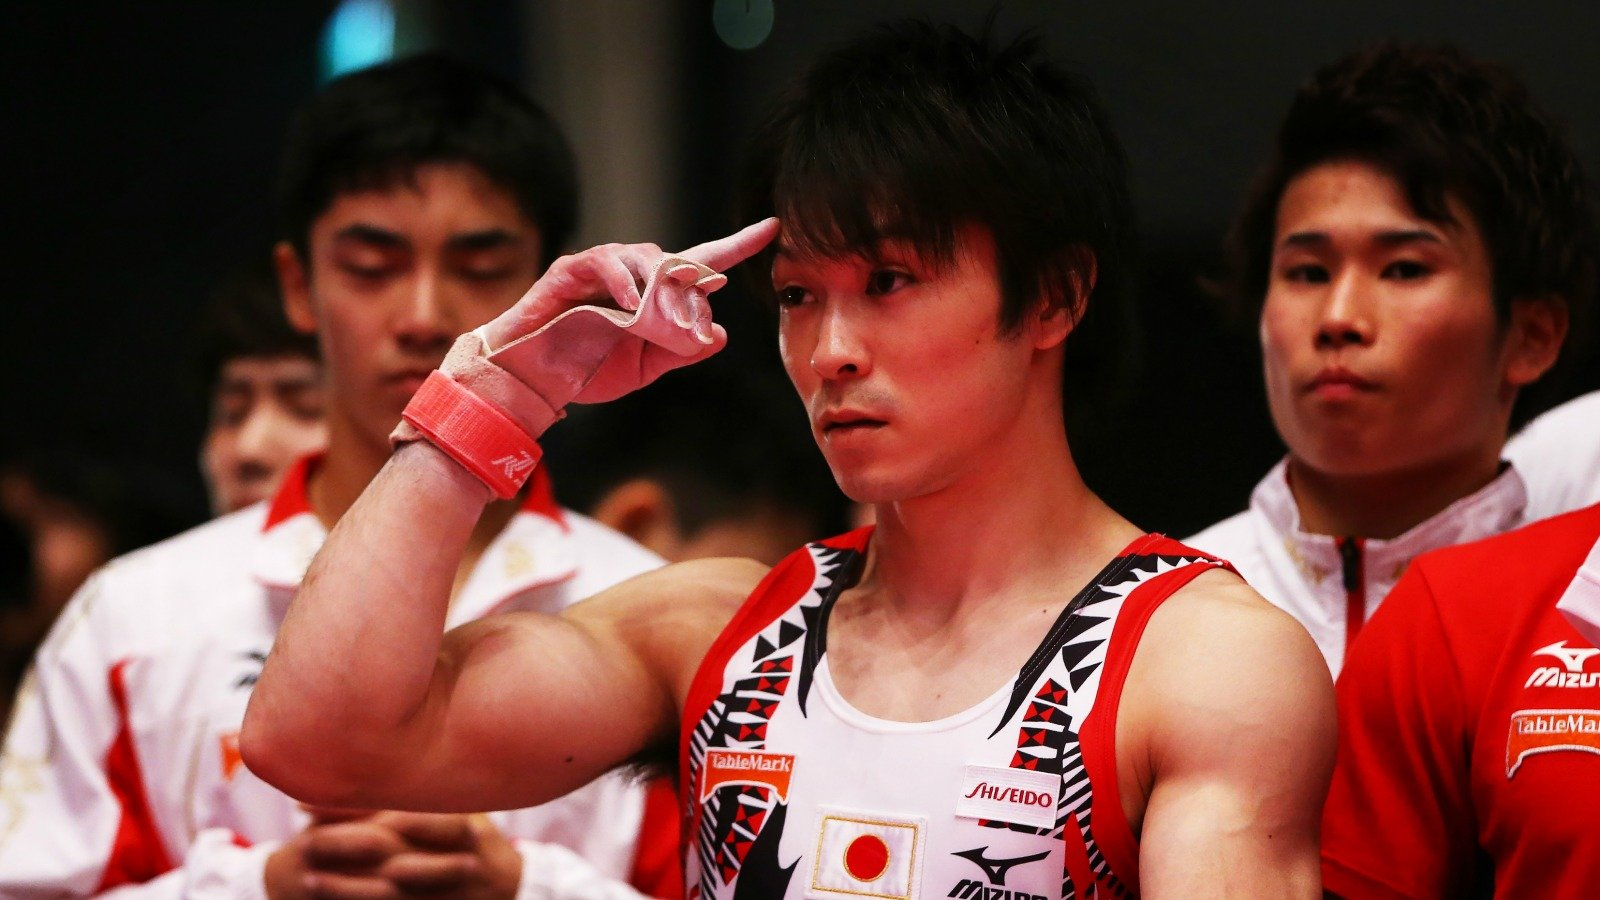 GLASGOW, SCOTLAND - OCTOBER 28: Uchimura Kohei of Japan waits for his score after he competes on the high bar during day six of World Artistic Gymnastics Championship at The SSE Hydro on October 28, 2015 in Glasgow, Scotland. (Photo by Ian MacNicol/Getty images) *** Local Caption *** Uchimura Kohei